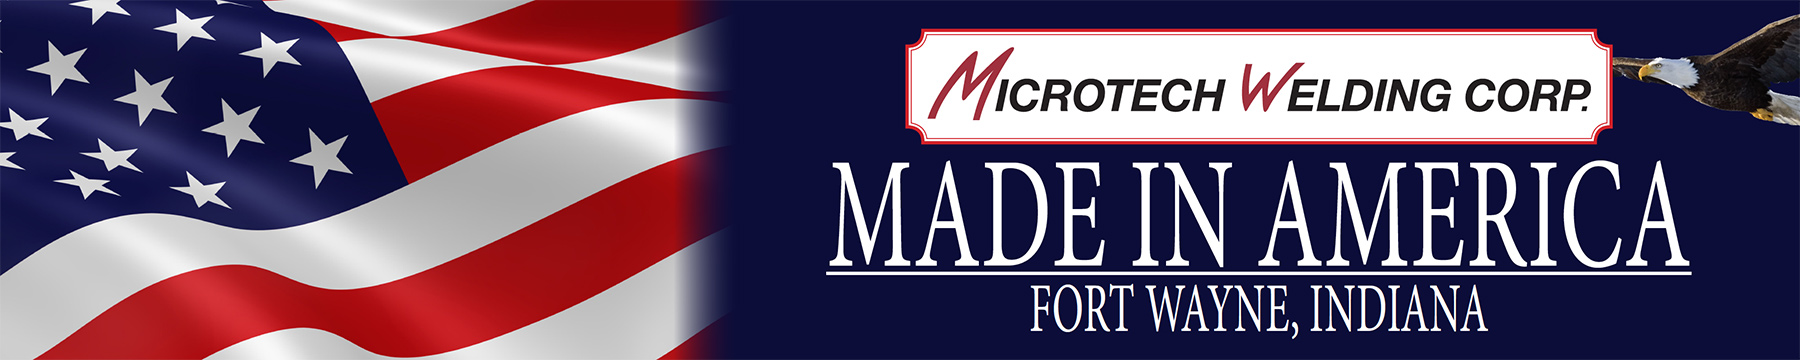 Microtech Welding Corp - Made in America - Fort Wayne, IN